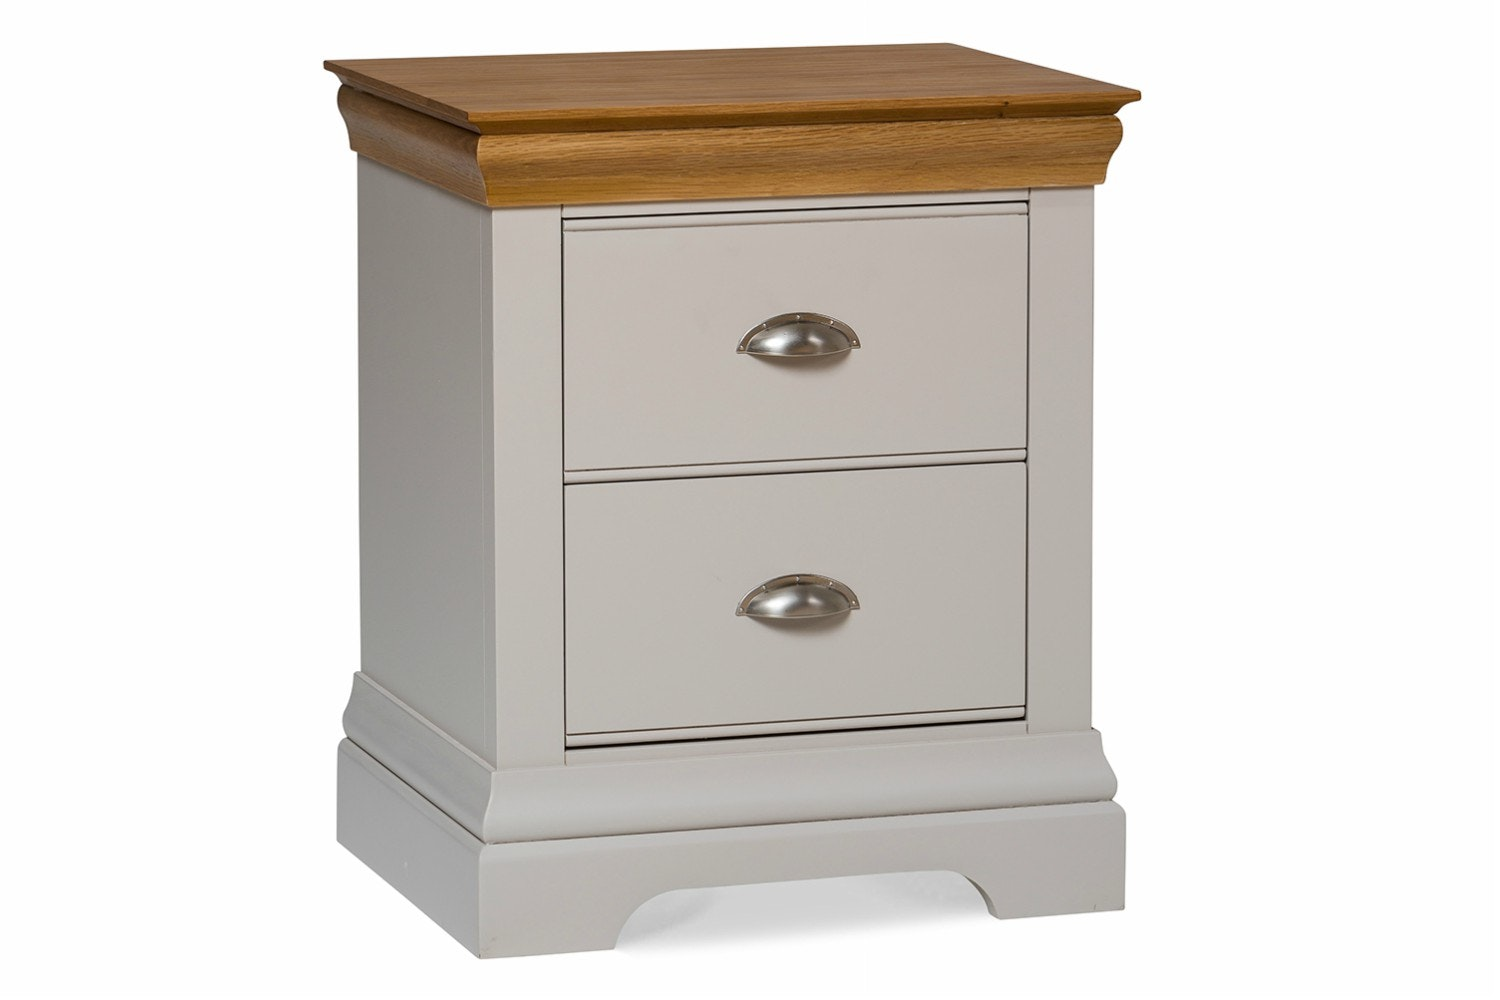 Ascott Bedside Locker | Pebble Stone